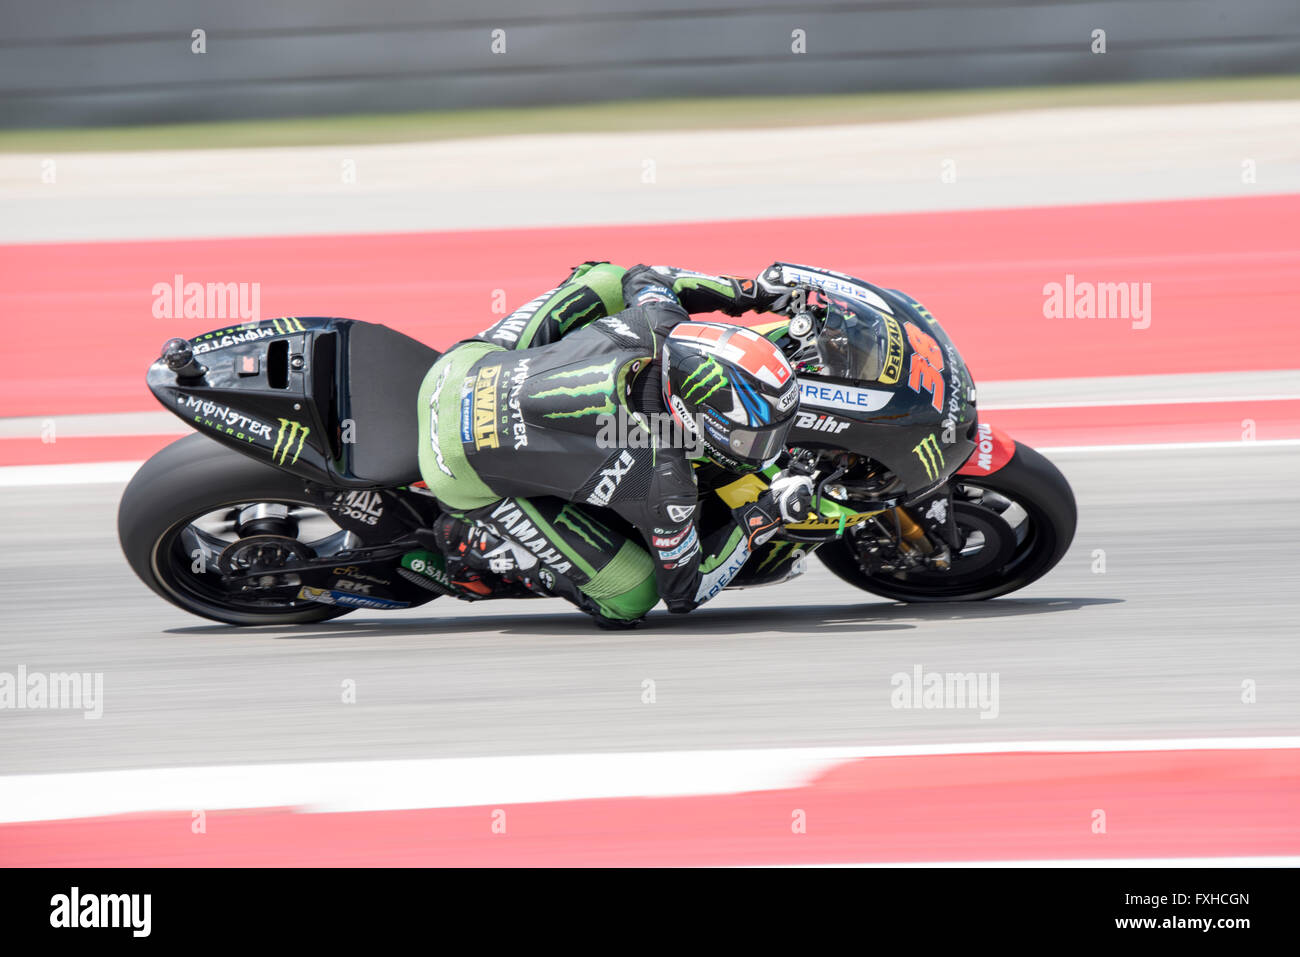 Bradley Smith of Monster Yamaha Tech 3 seen during the 2016 Red Bull Grand Prix of the Americas at Circuit of the Stock Photo